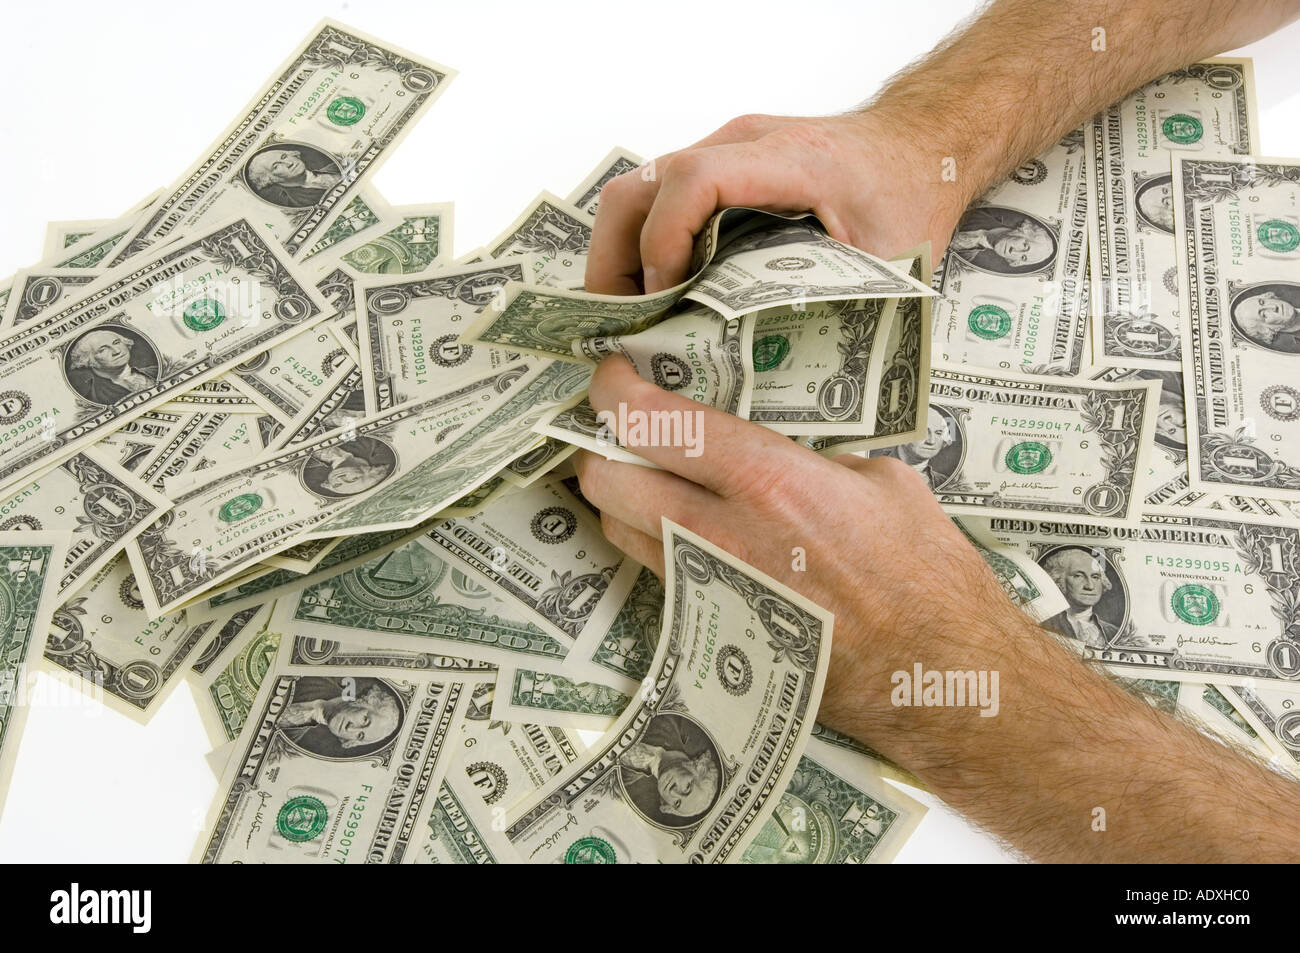 hands grab at money snatsch one dollar 1 notes currency covetousness avarice piggishness voracity greed cupidity ravenousness  Stock Photo